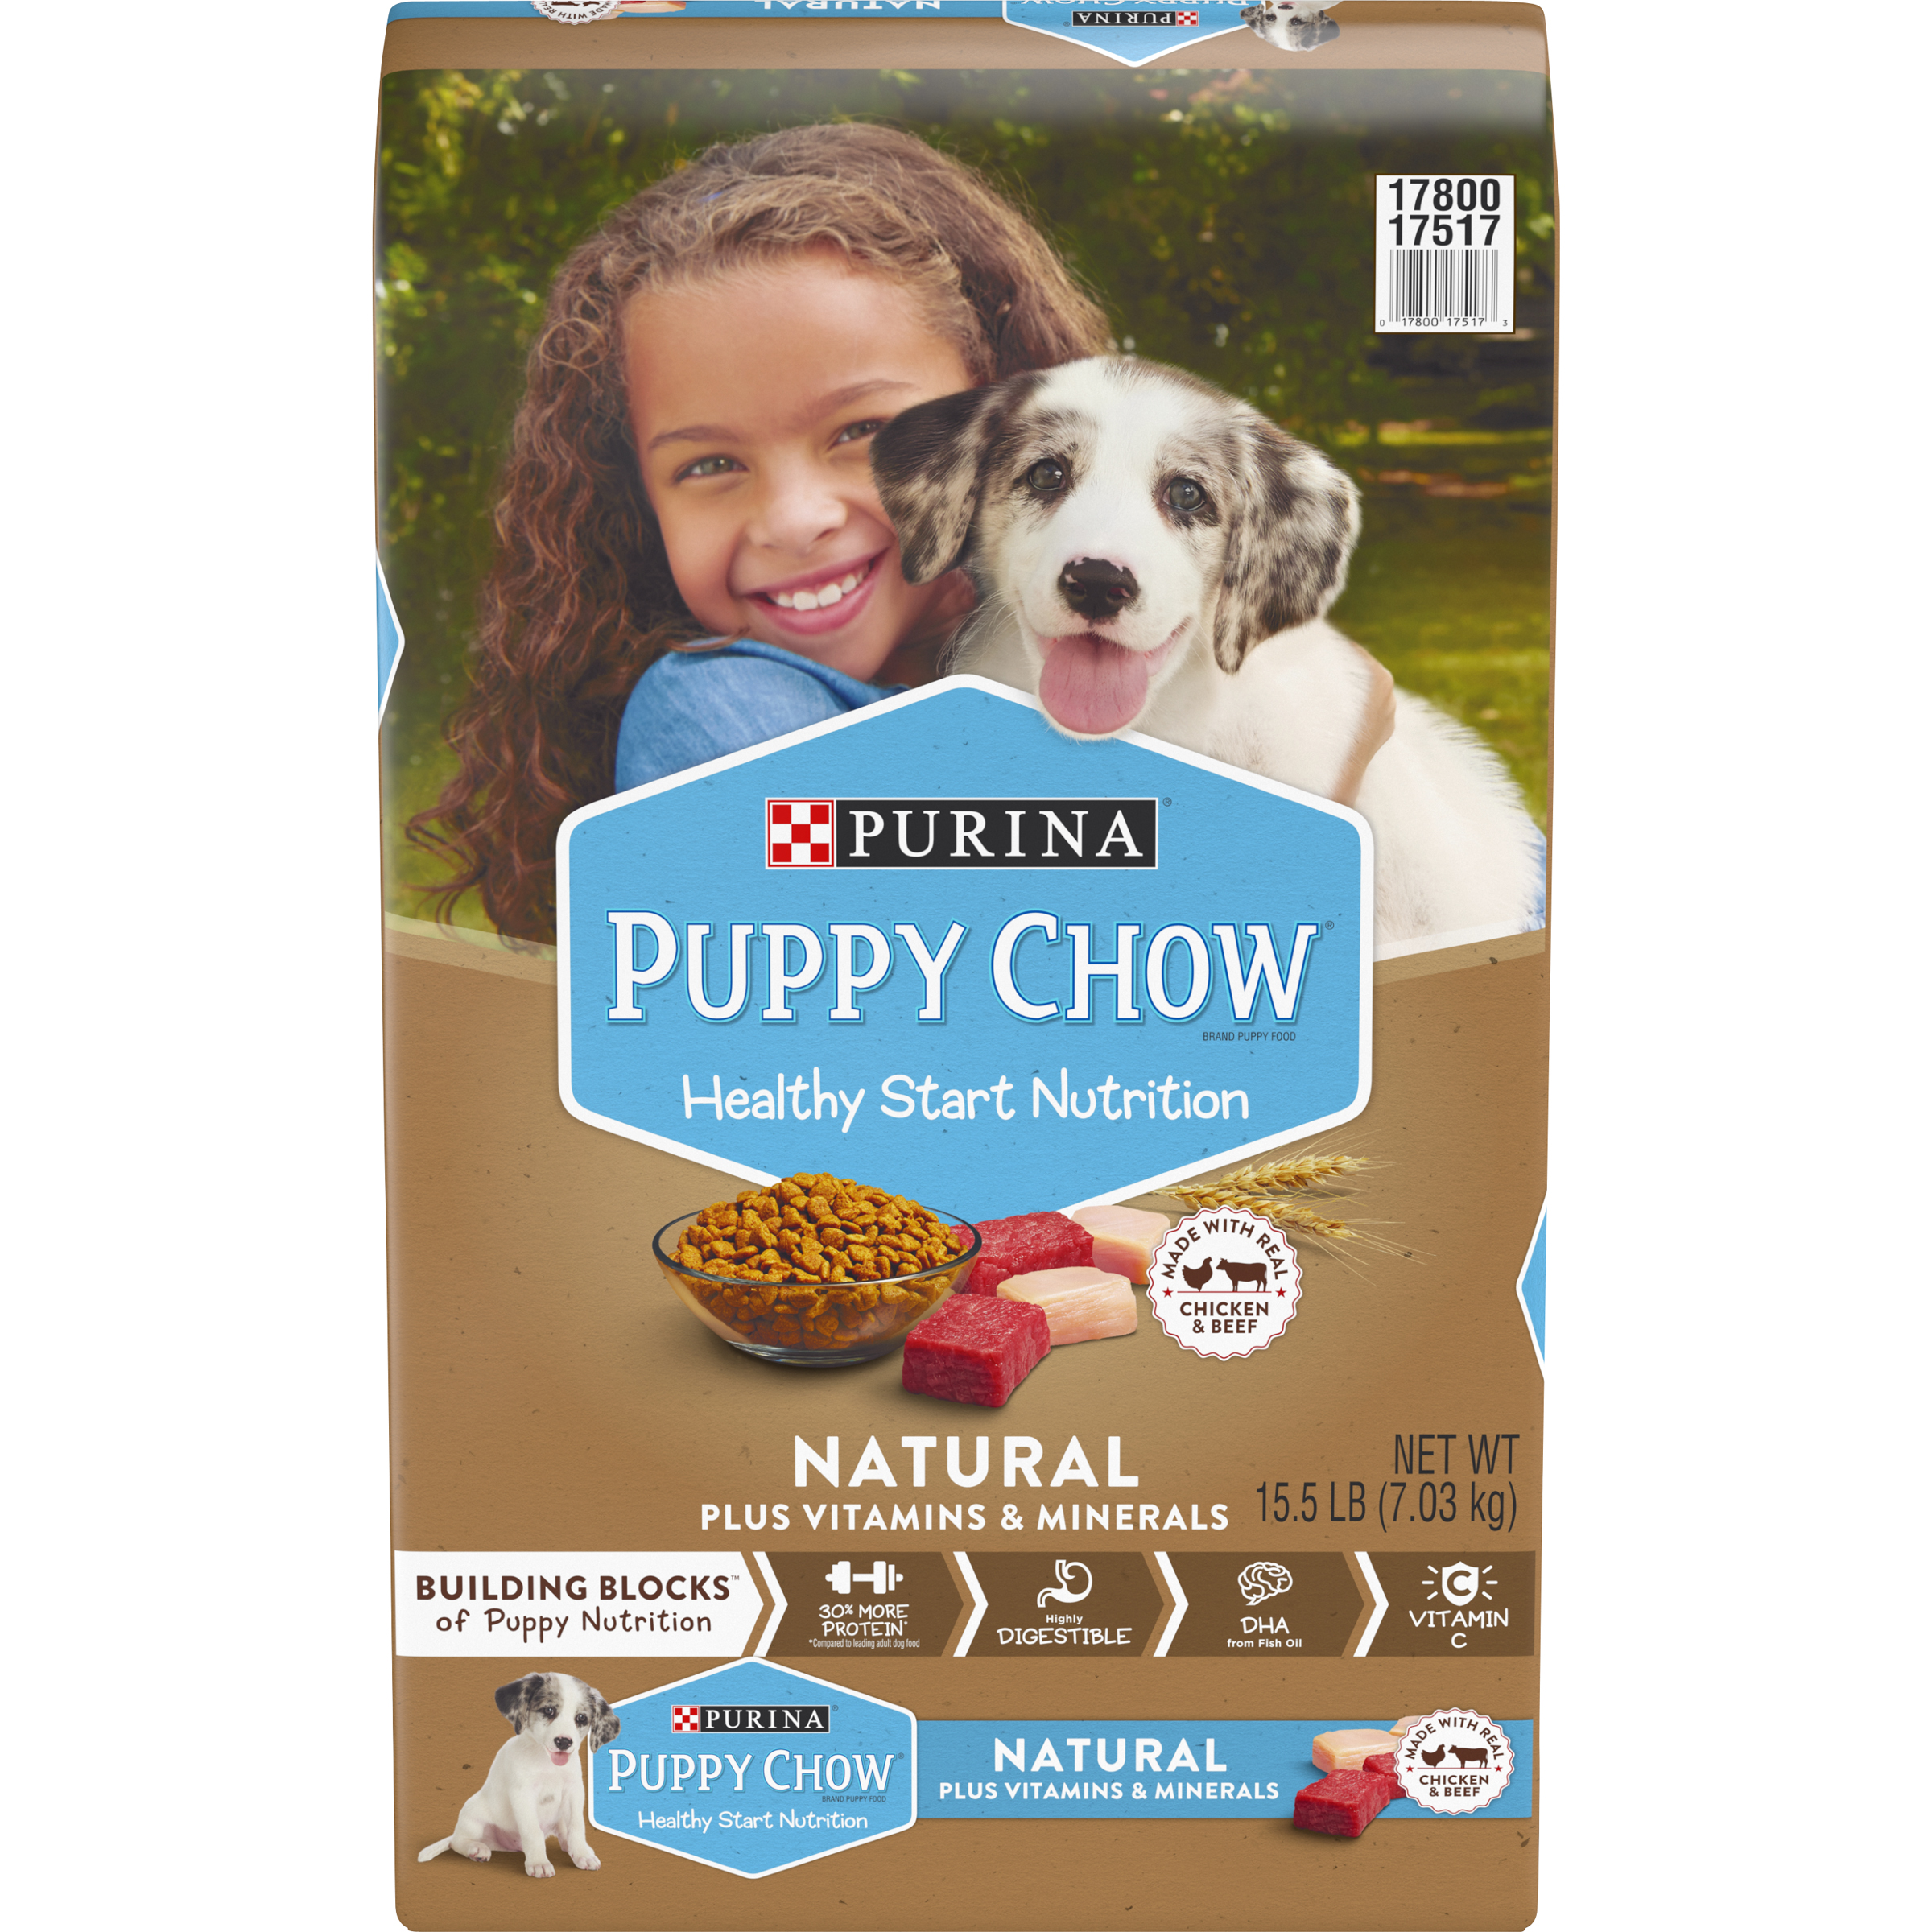 Puppy Chow Natural With Real Chicken & Beef Plus Vitamins & Minerals Dry Puppy Food - 15.5 lb. Bag